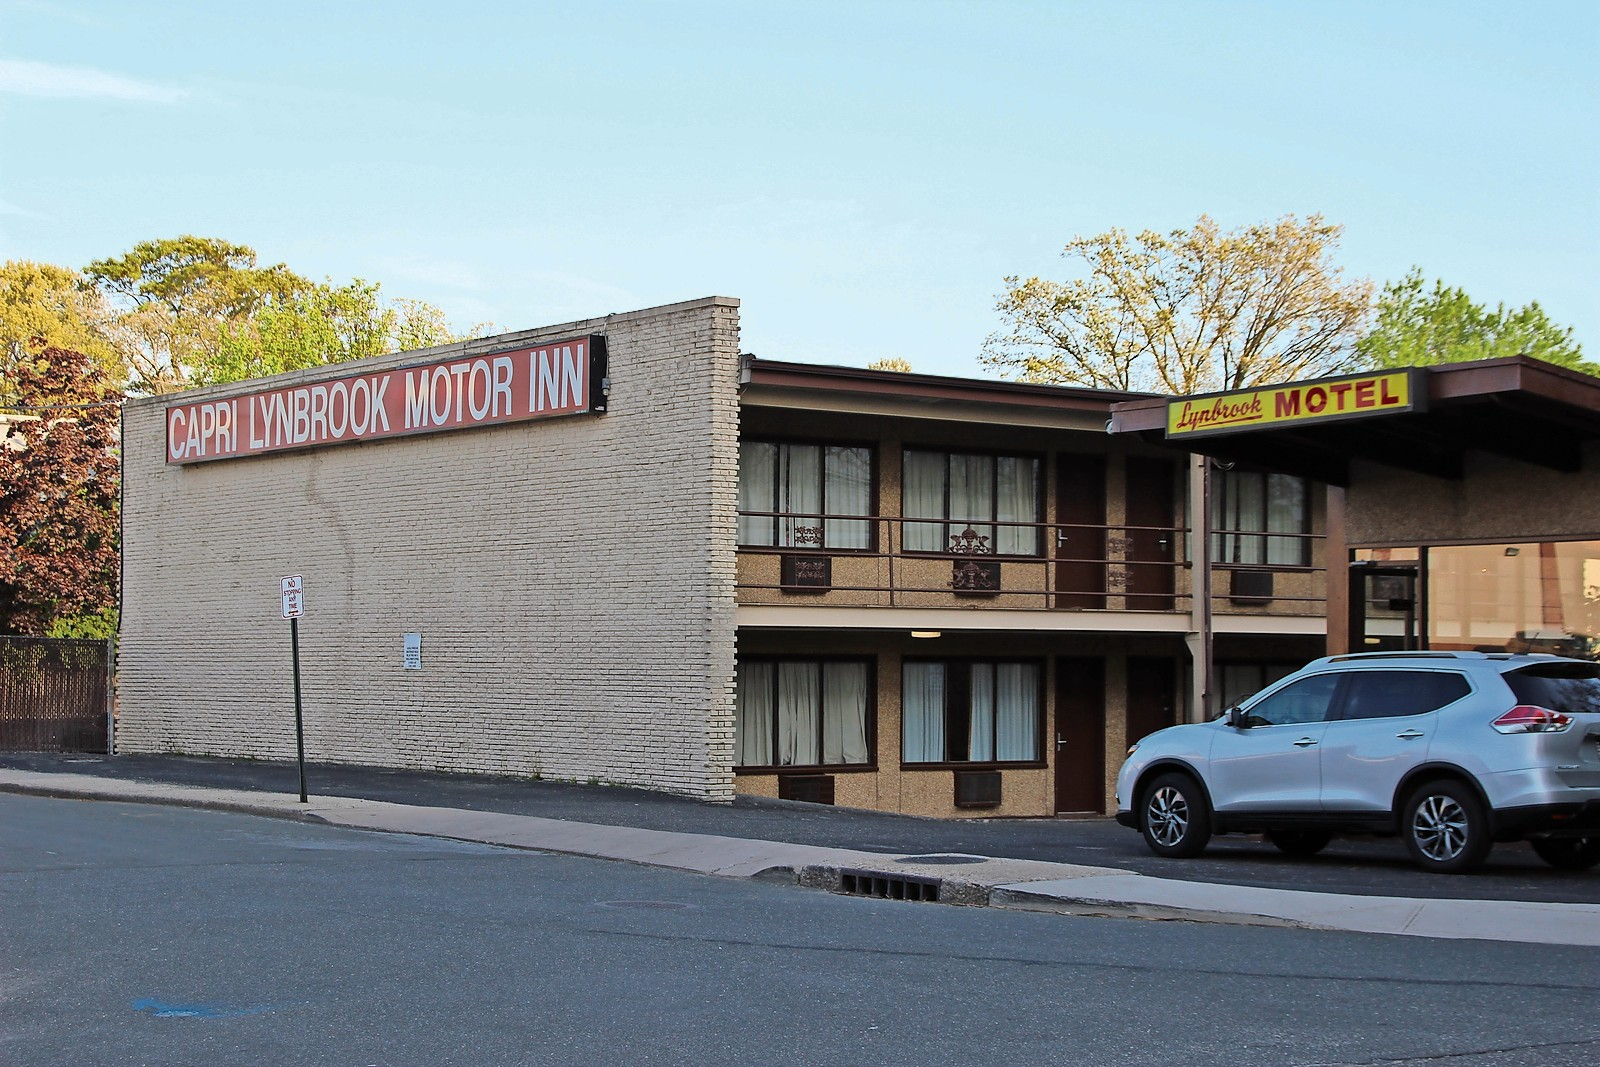 hearings will decide fate of lynbrook capri motor inn